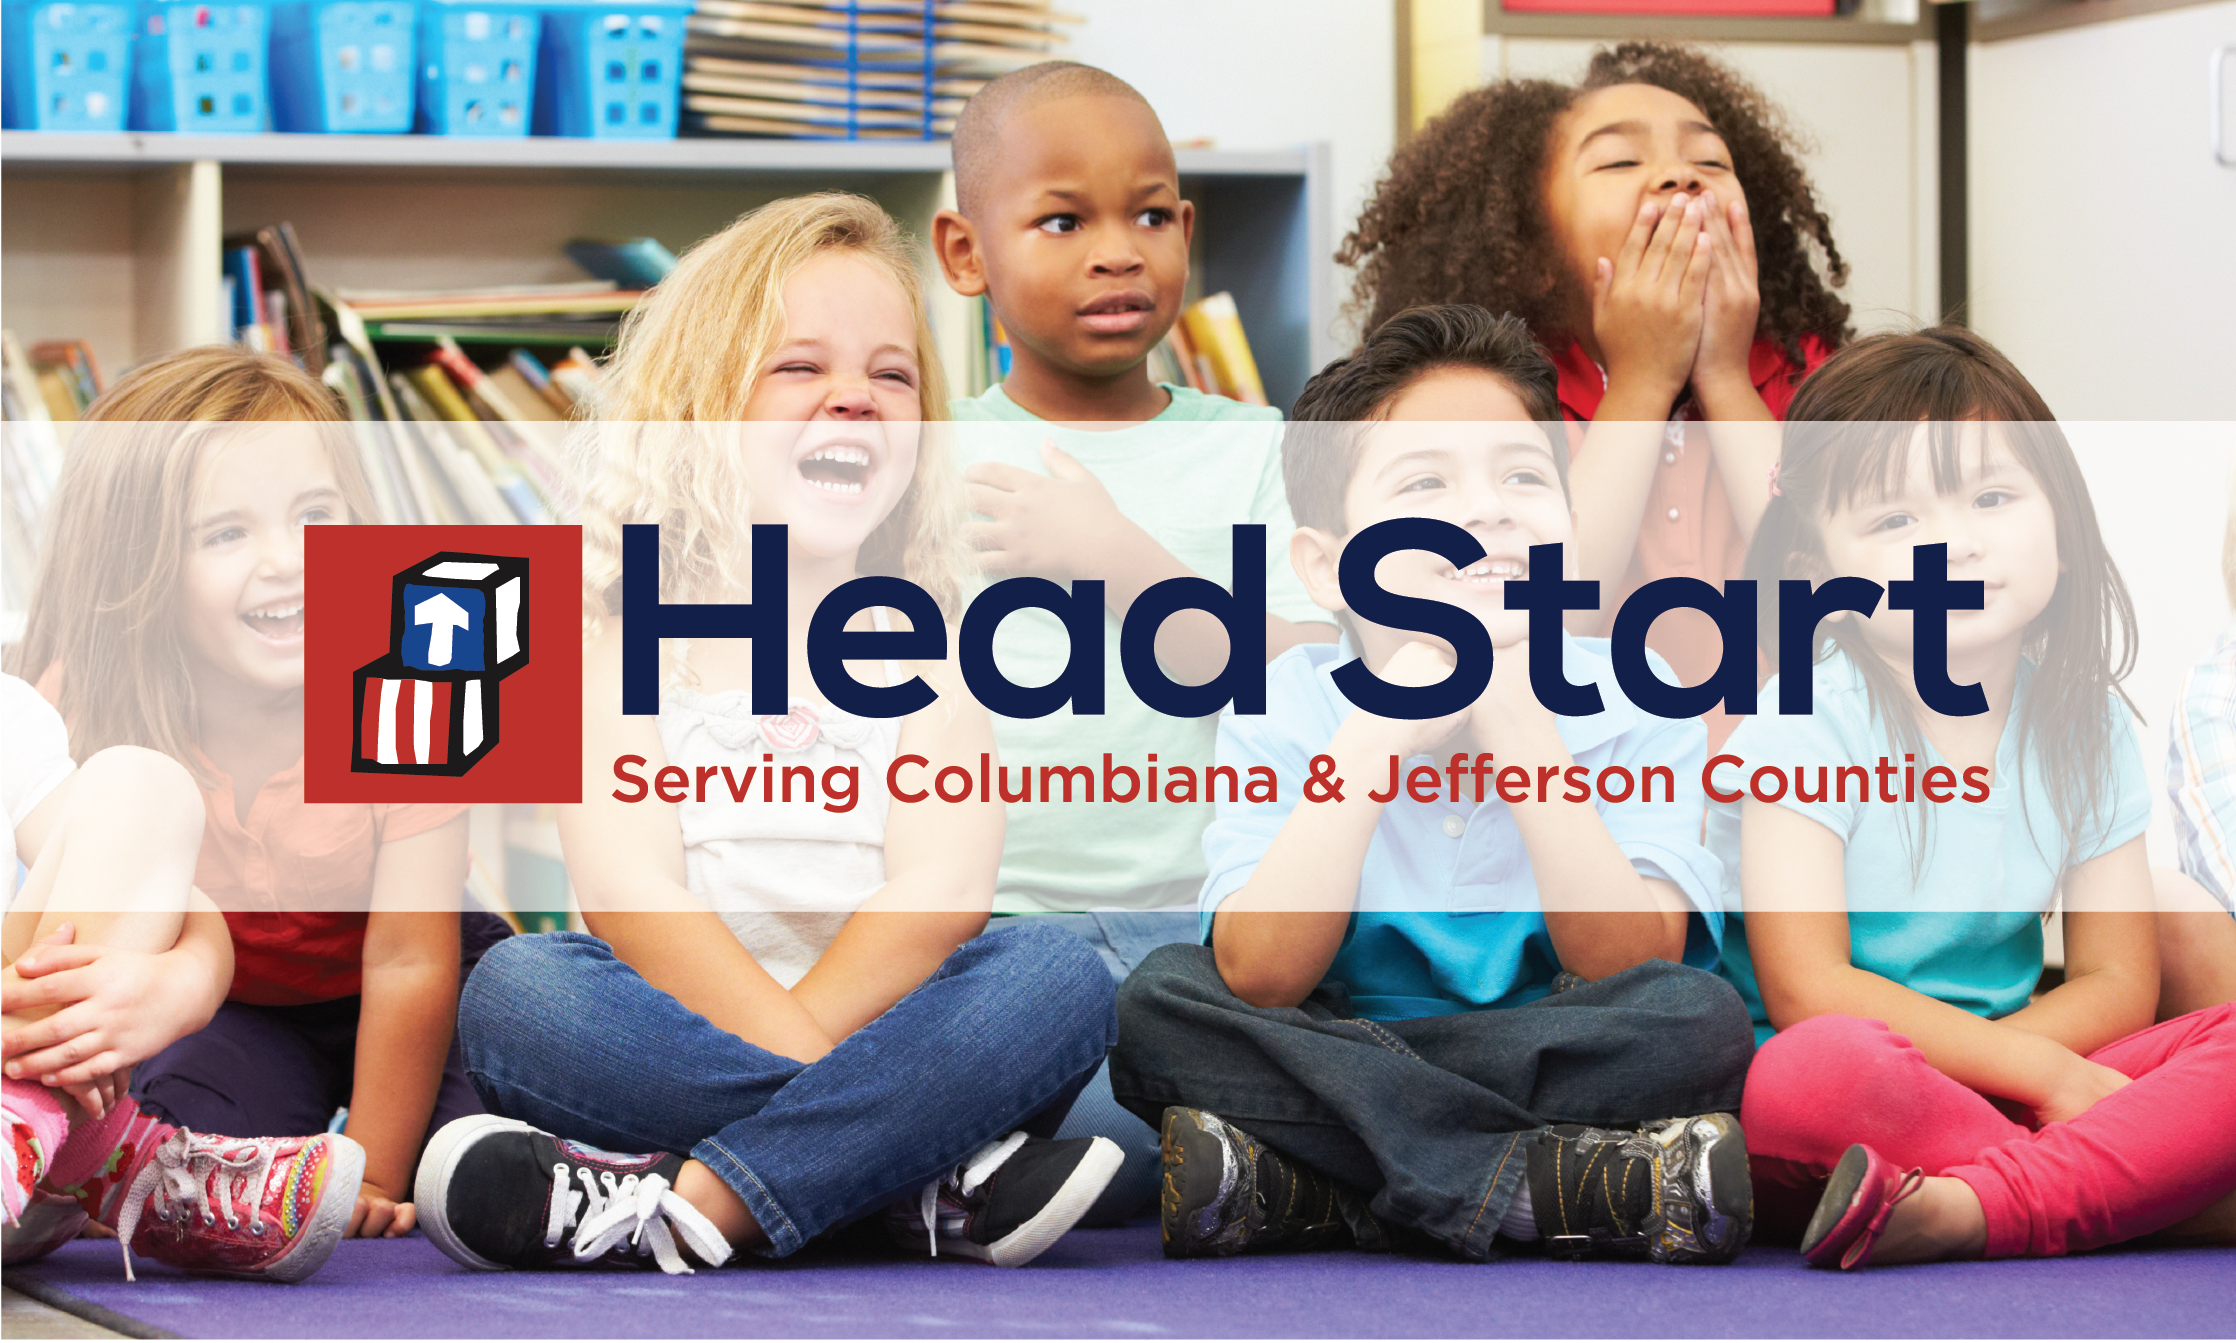 Our mission is to improve educational outcomes and well being of children and strengthen the families we serve.